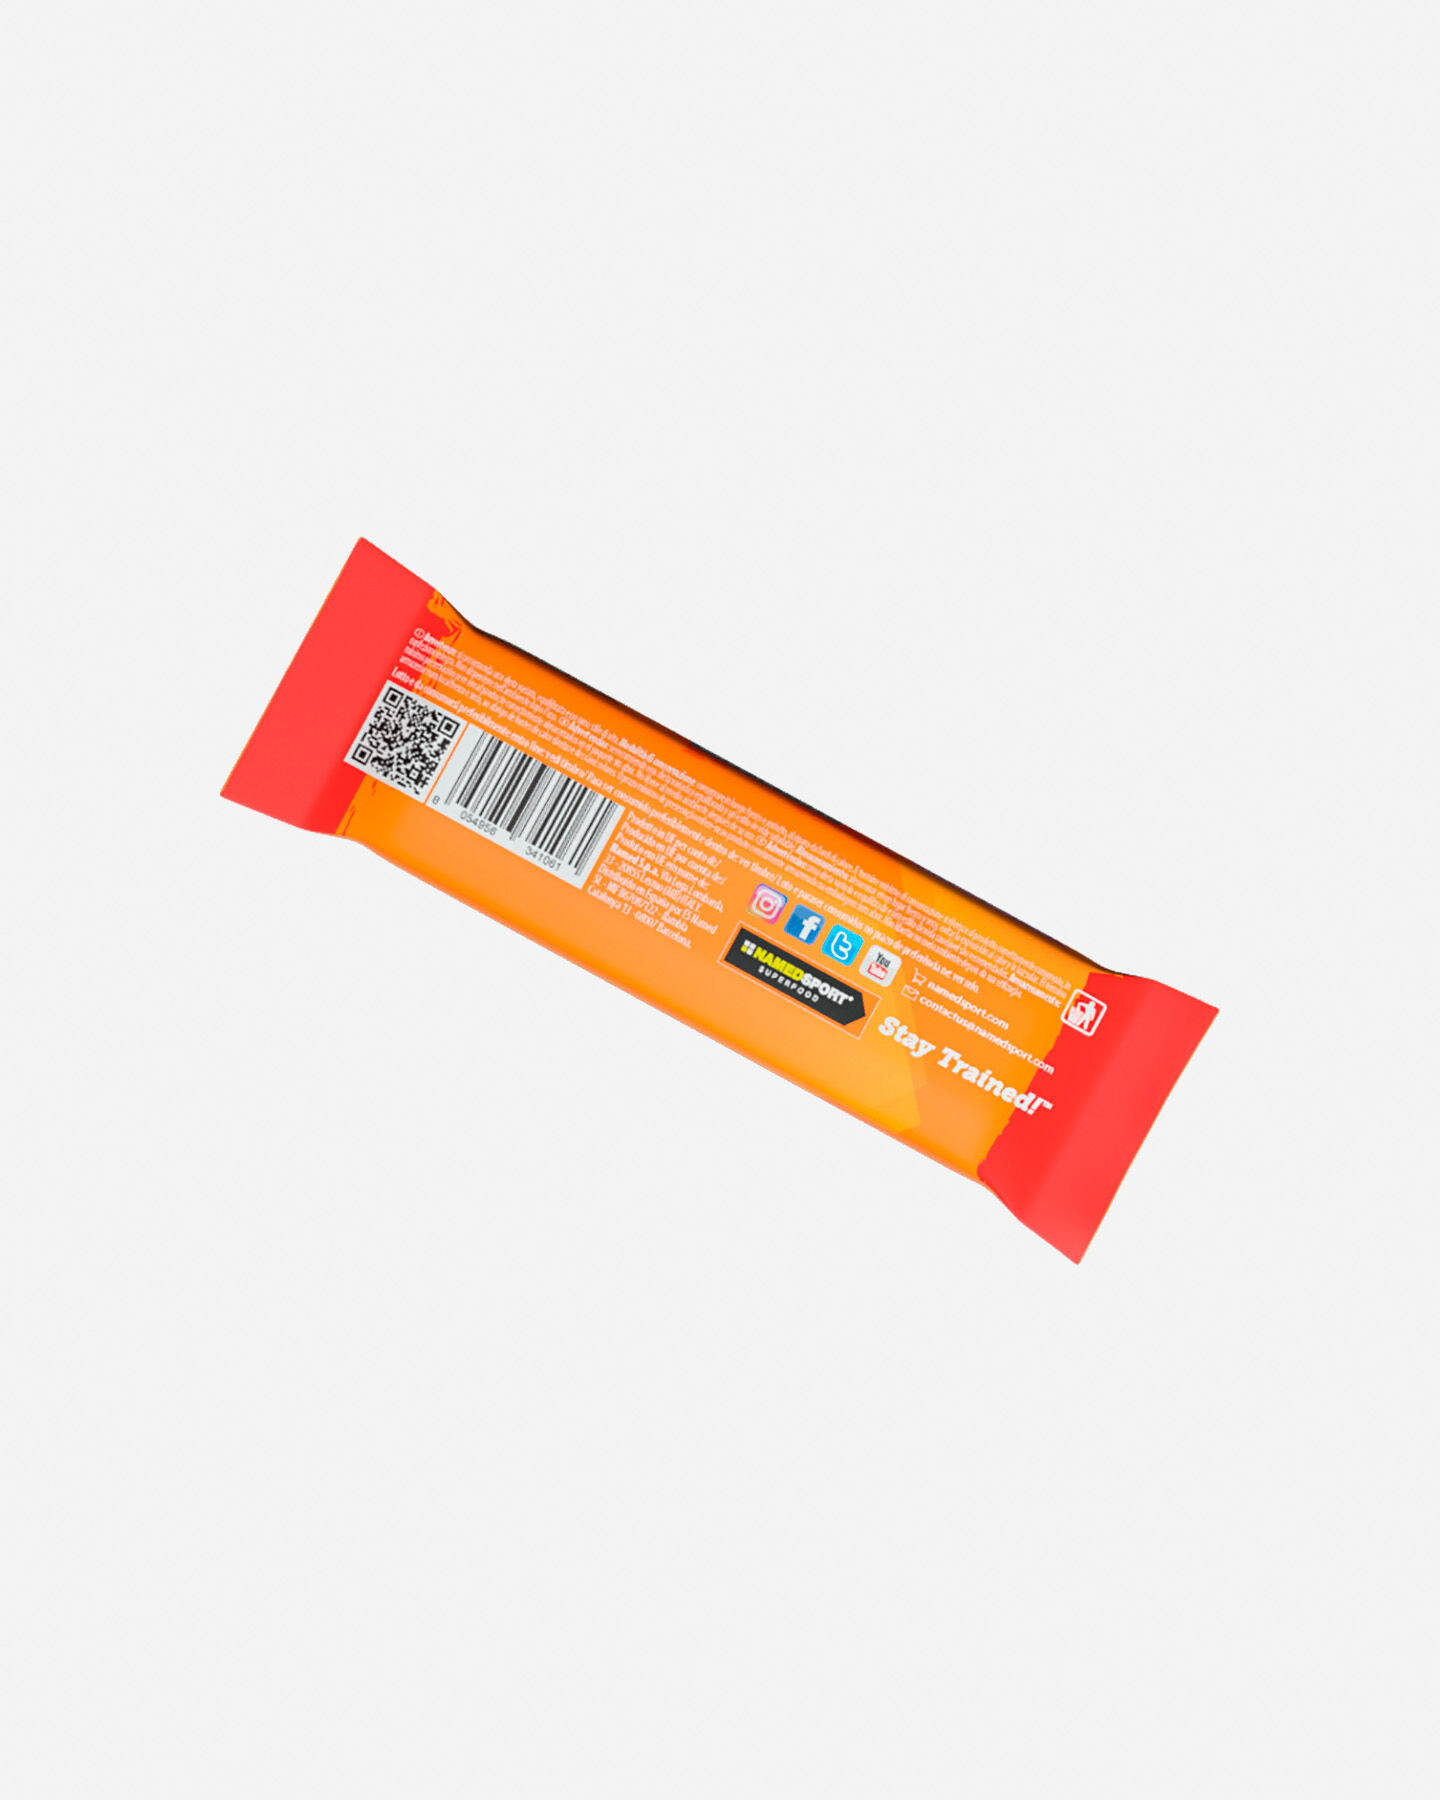 Energetico NAMED SPORT TOTAL ENERGY FRUITBAR YELLOW FRUITS 35G S1309096 1 UNI scatto 1